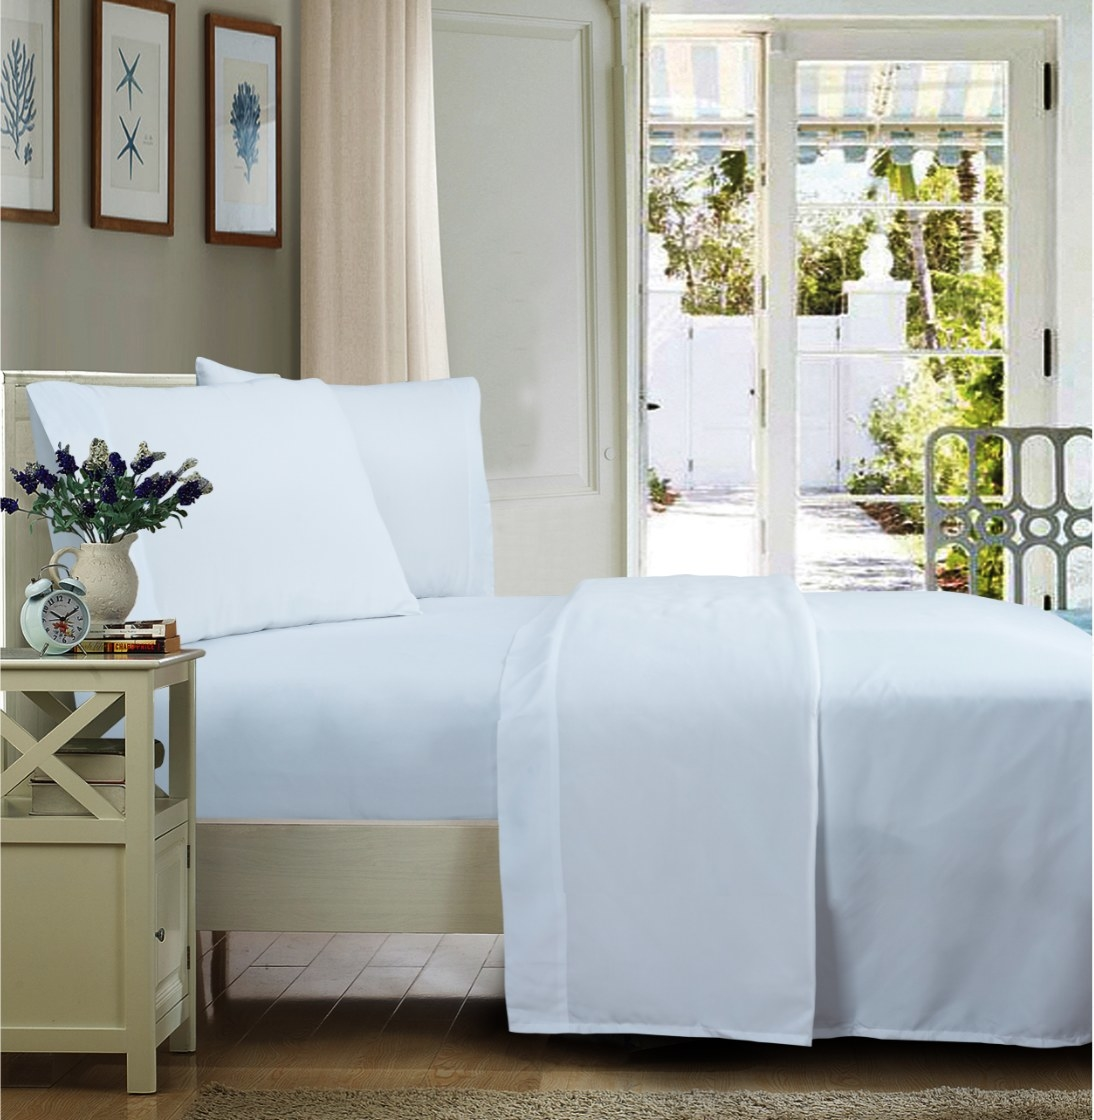 The wrinkle-resistant microfiber sheet in arctic white